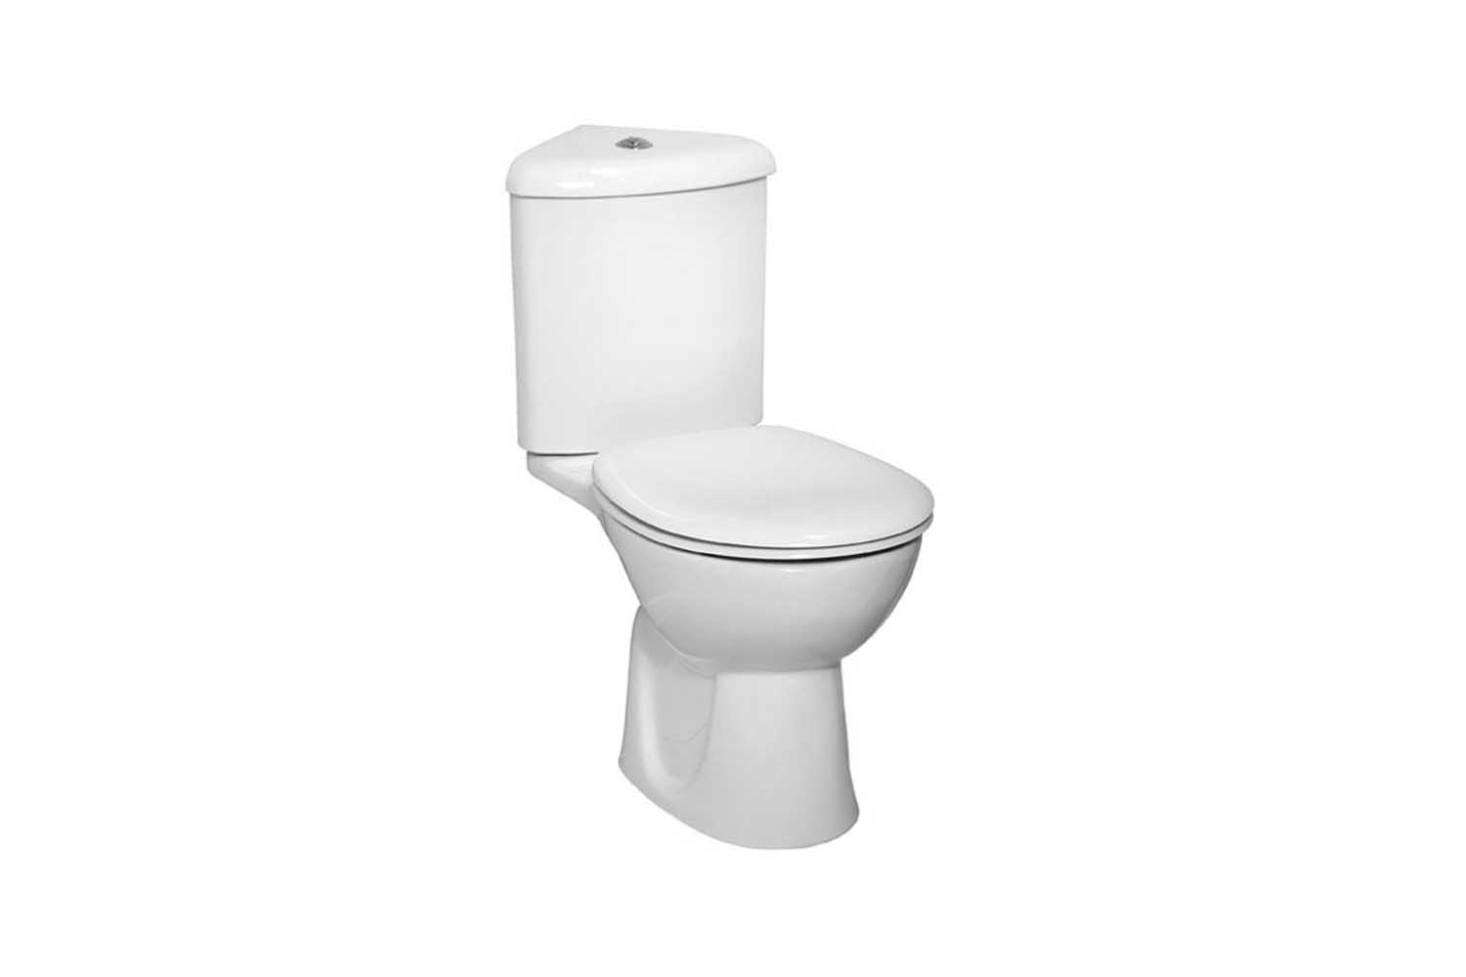 The Vitra Layton Corner Close Coupled Toilet with an open back is another model from Victorian Plumbing; it&#8